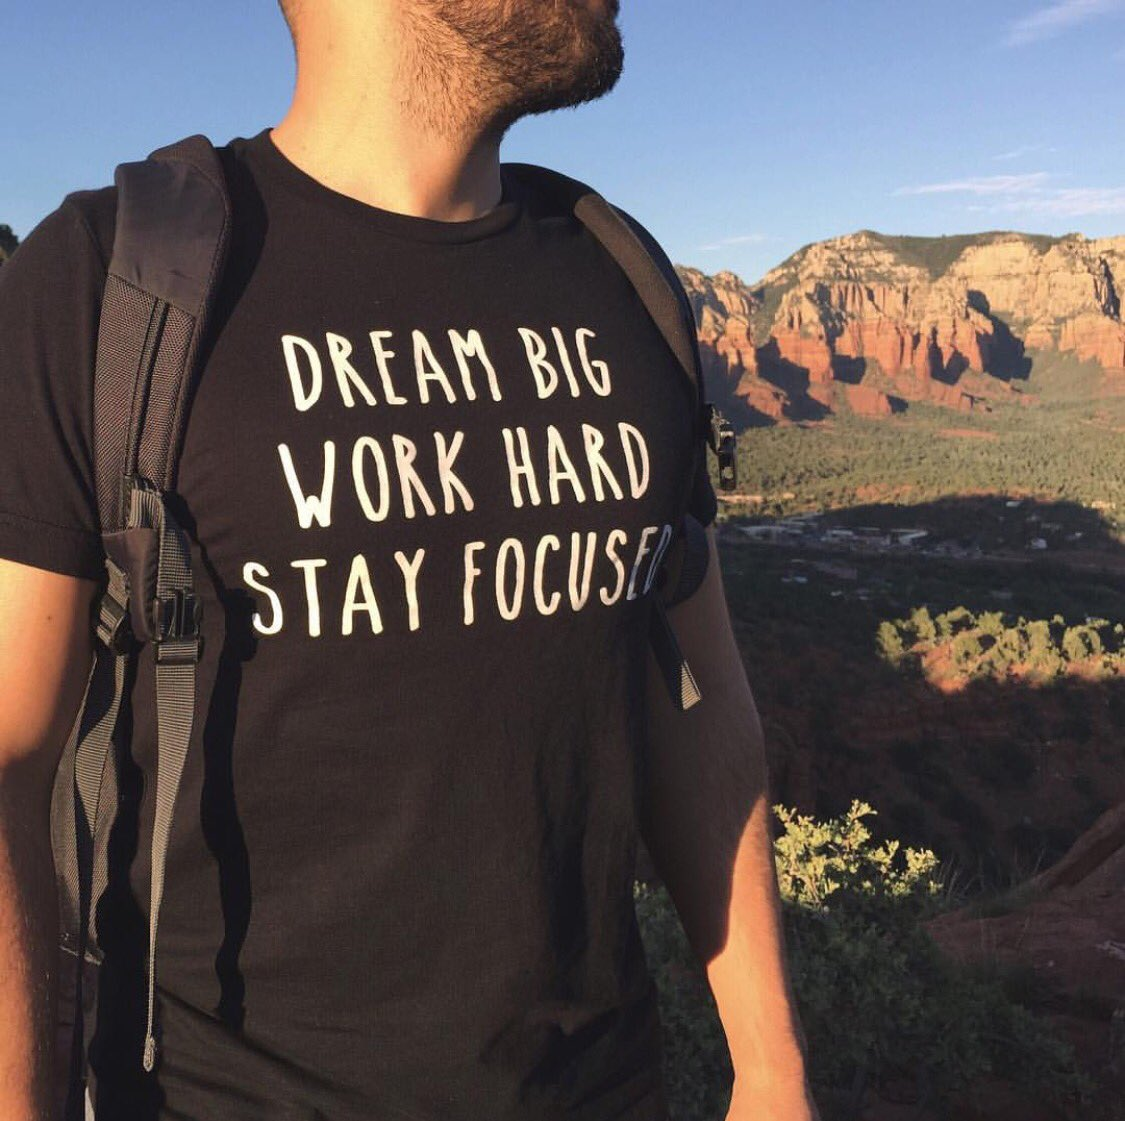 Don&#39;t be afraid to dream BIG and work HARD. The key is to stay focused. #StayHumble #StayHungry #DrivenByEternity #FullyAlive<br>http://pic.twitter.com/papjSHSywK